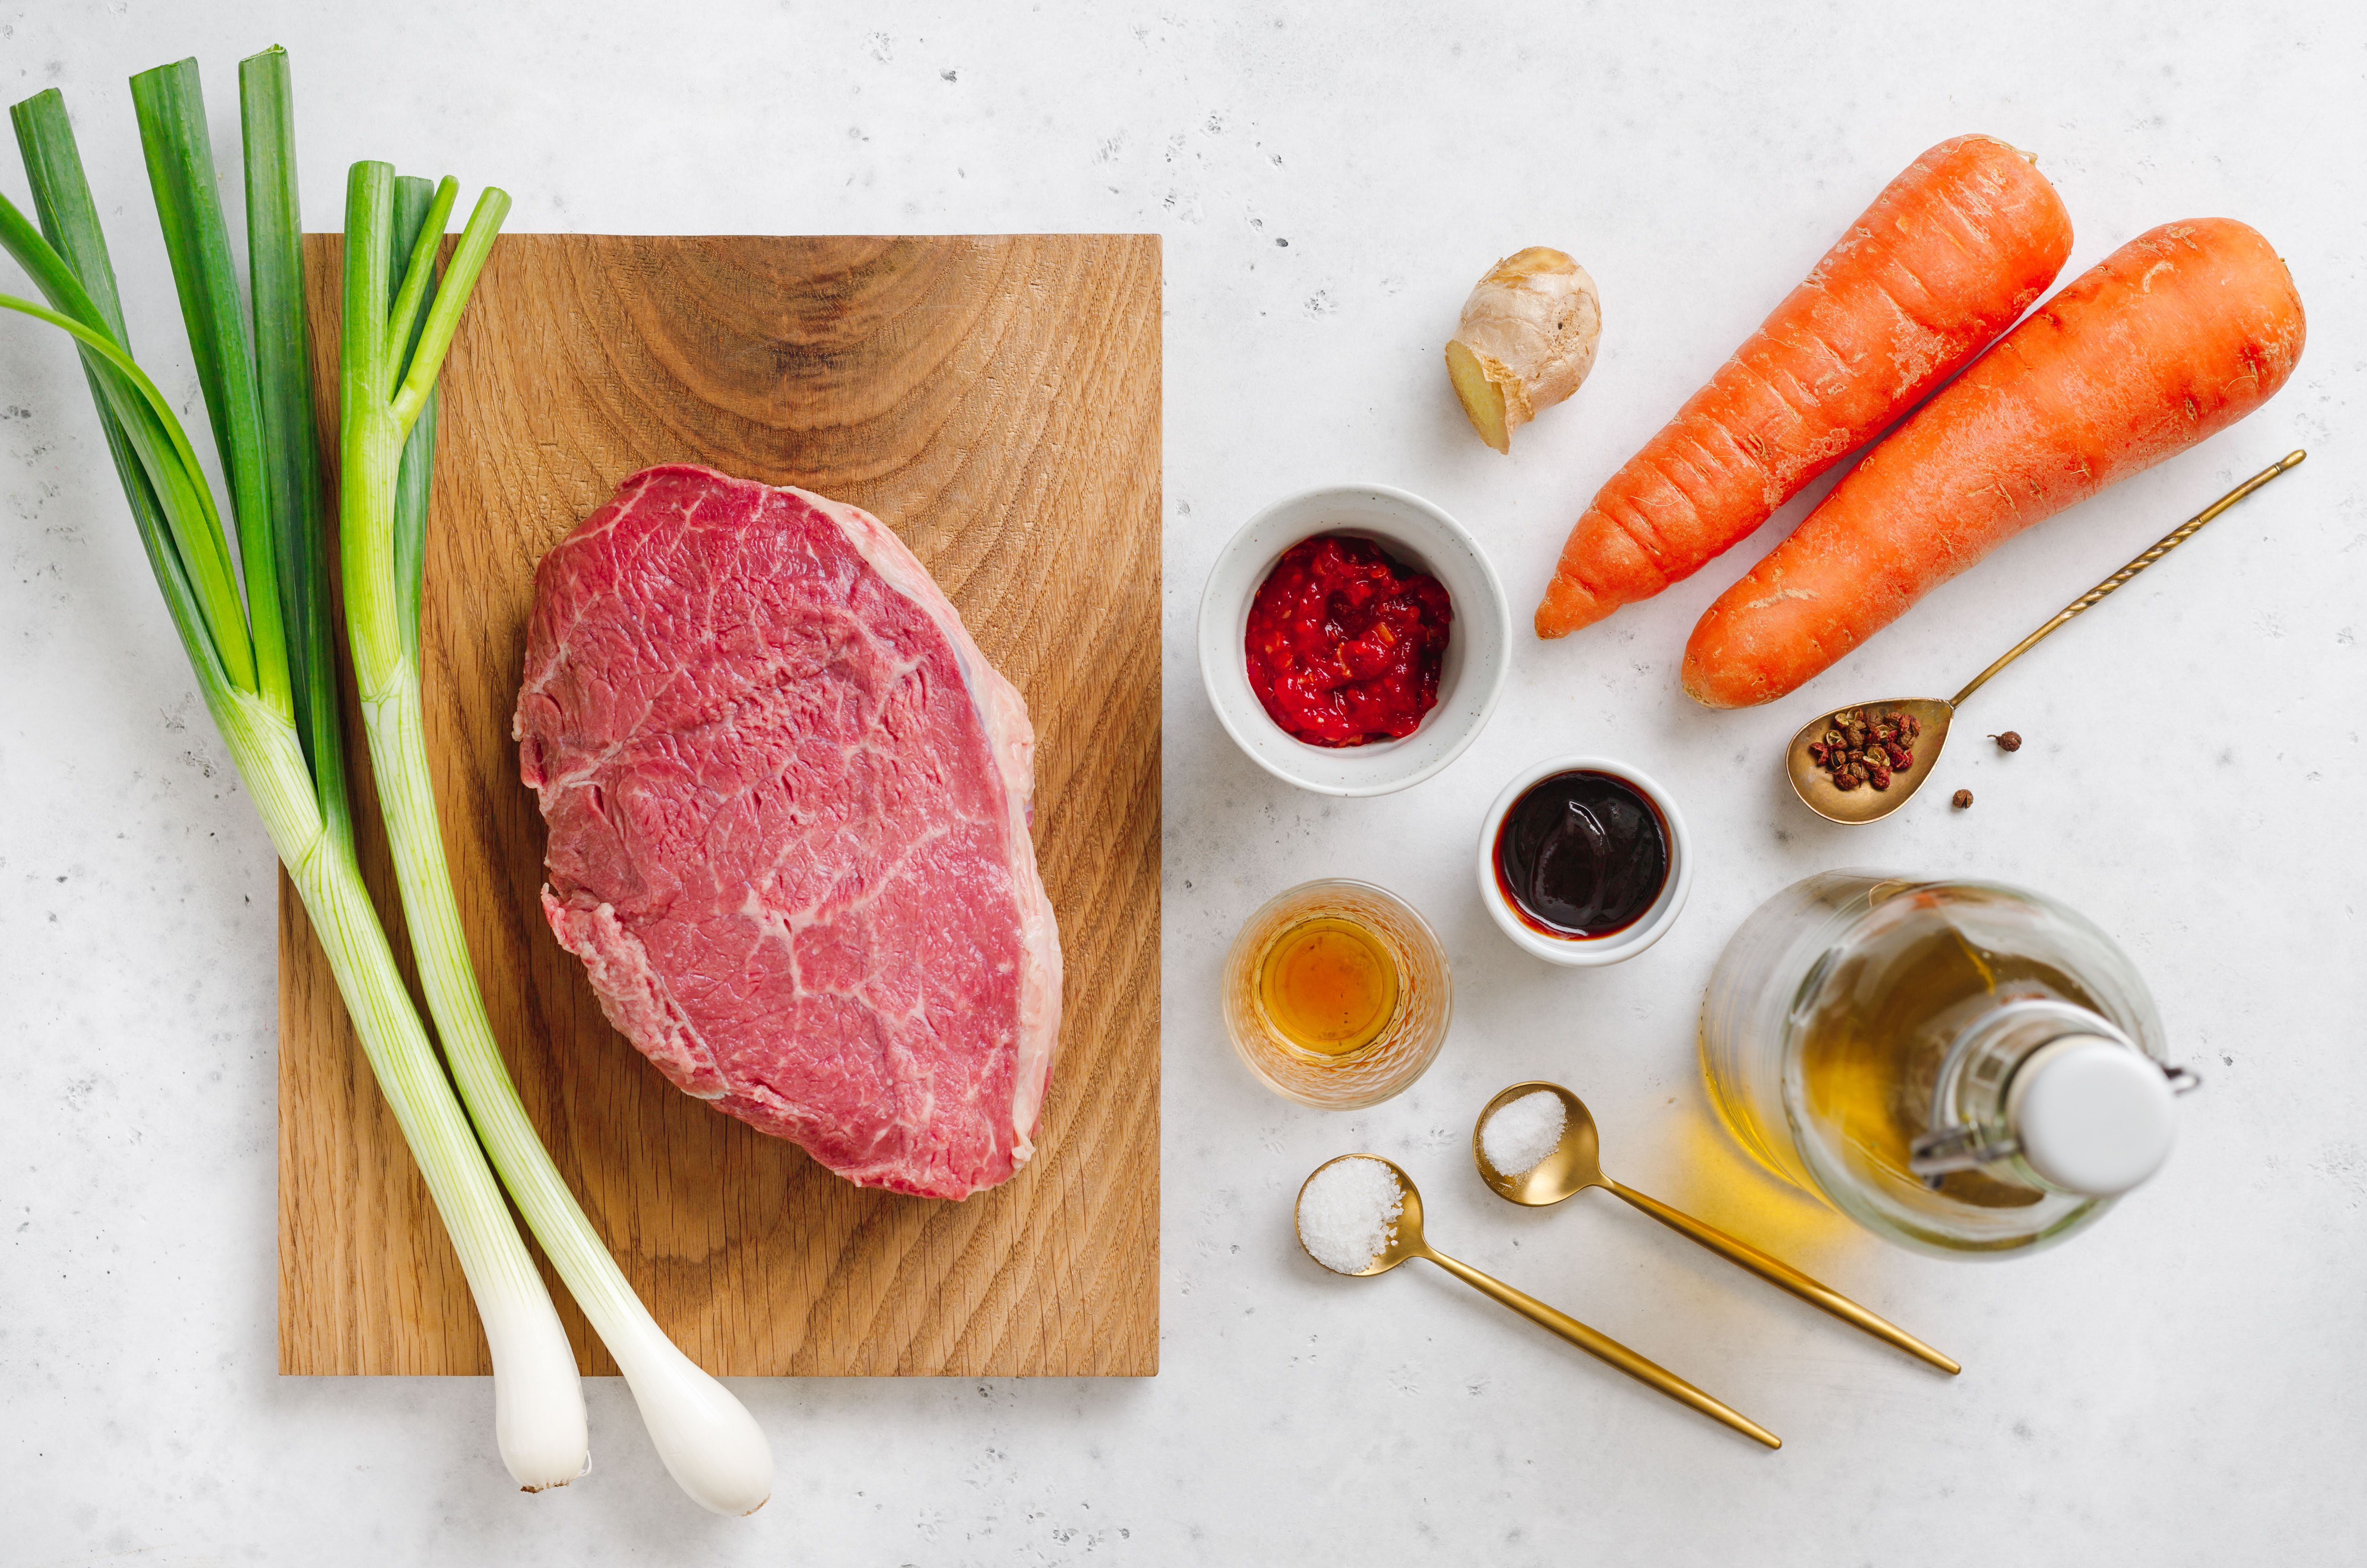 Ingredients for Chinese szechuan beef